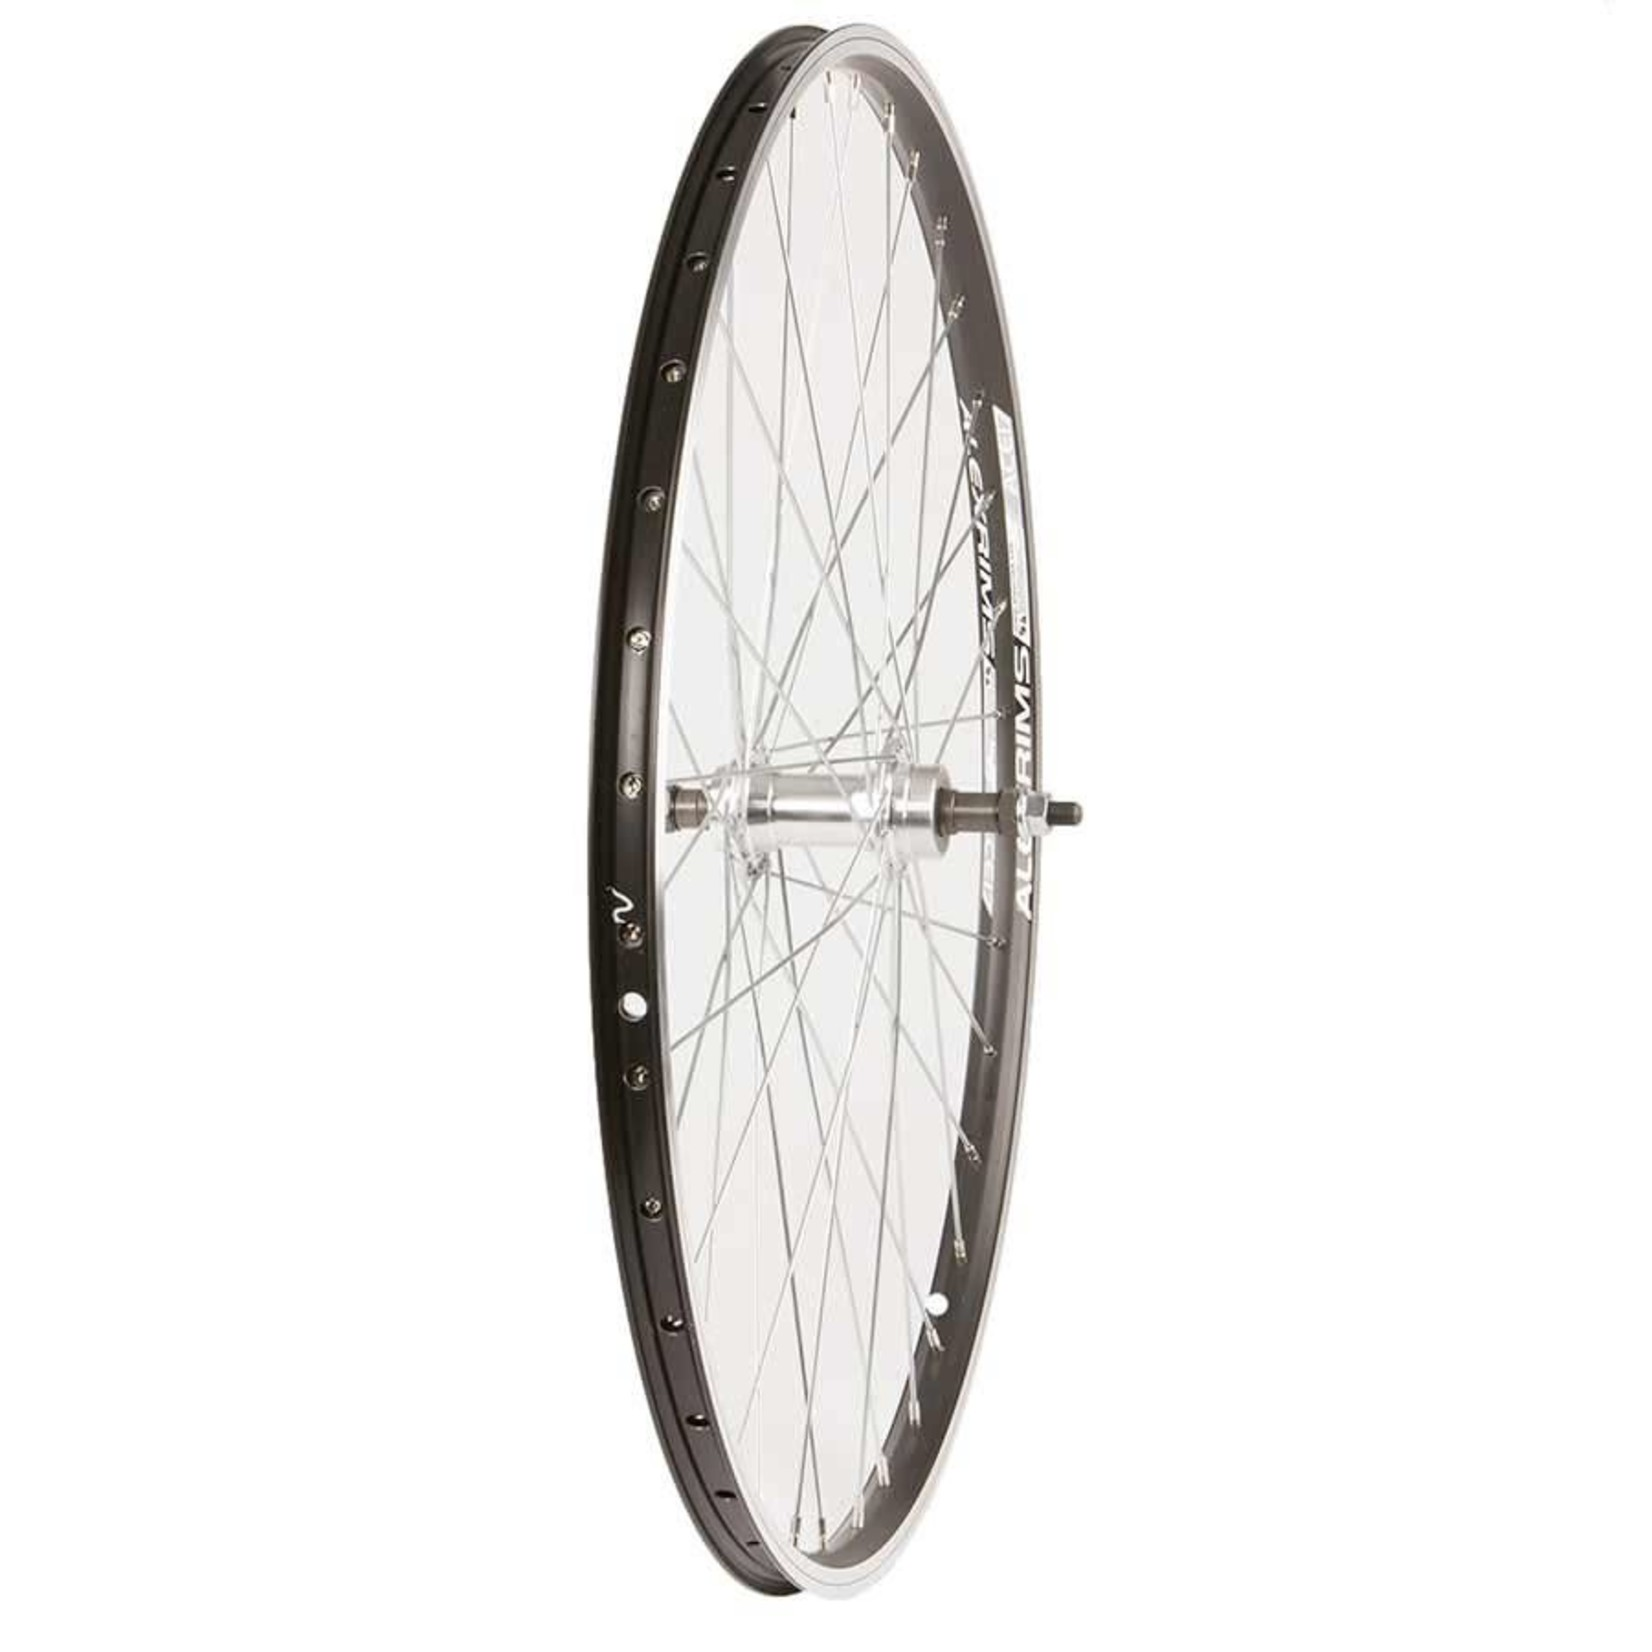 The Wheel Shop Wheel Shop, Alex Ace17 Noir/ Formula FM-31, Roue, Arriere, 26'' / 559, Trous: 36, Boulons, 135mm, Sur jante, Roue libre